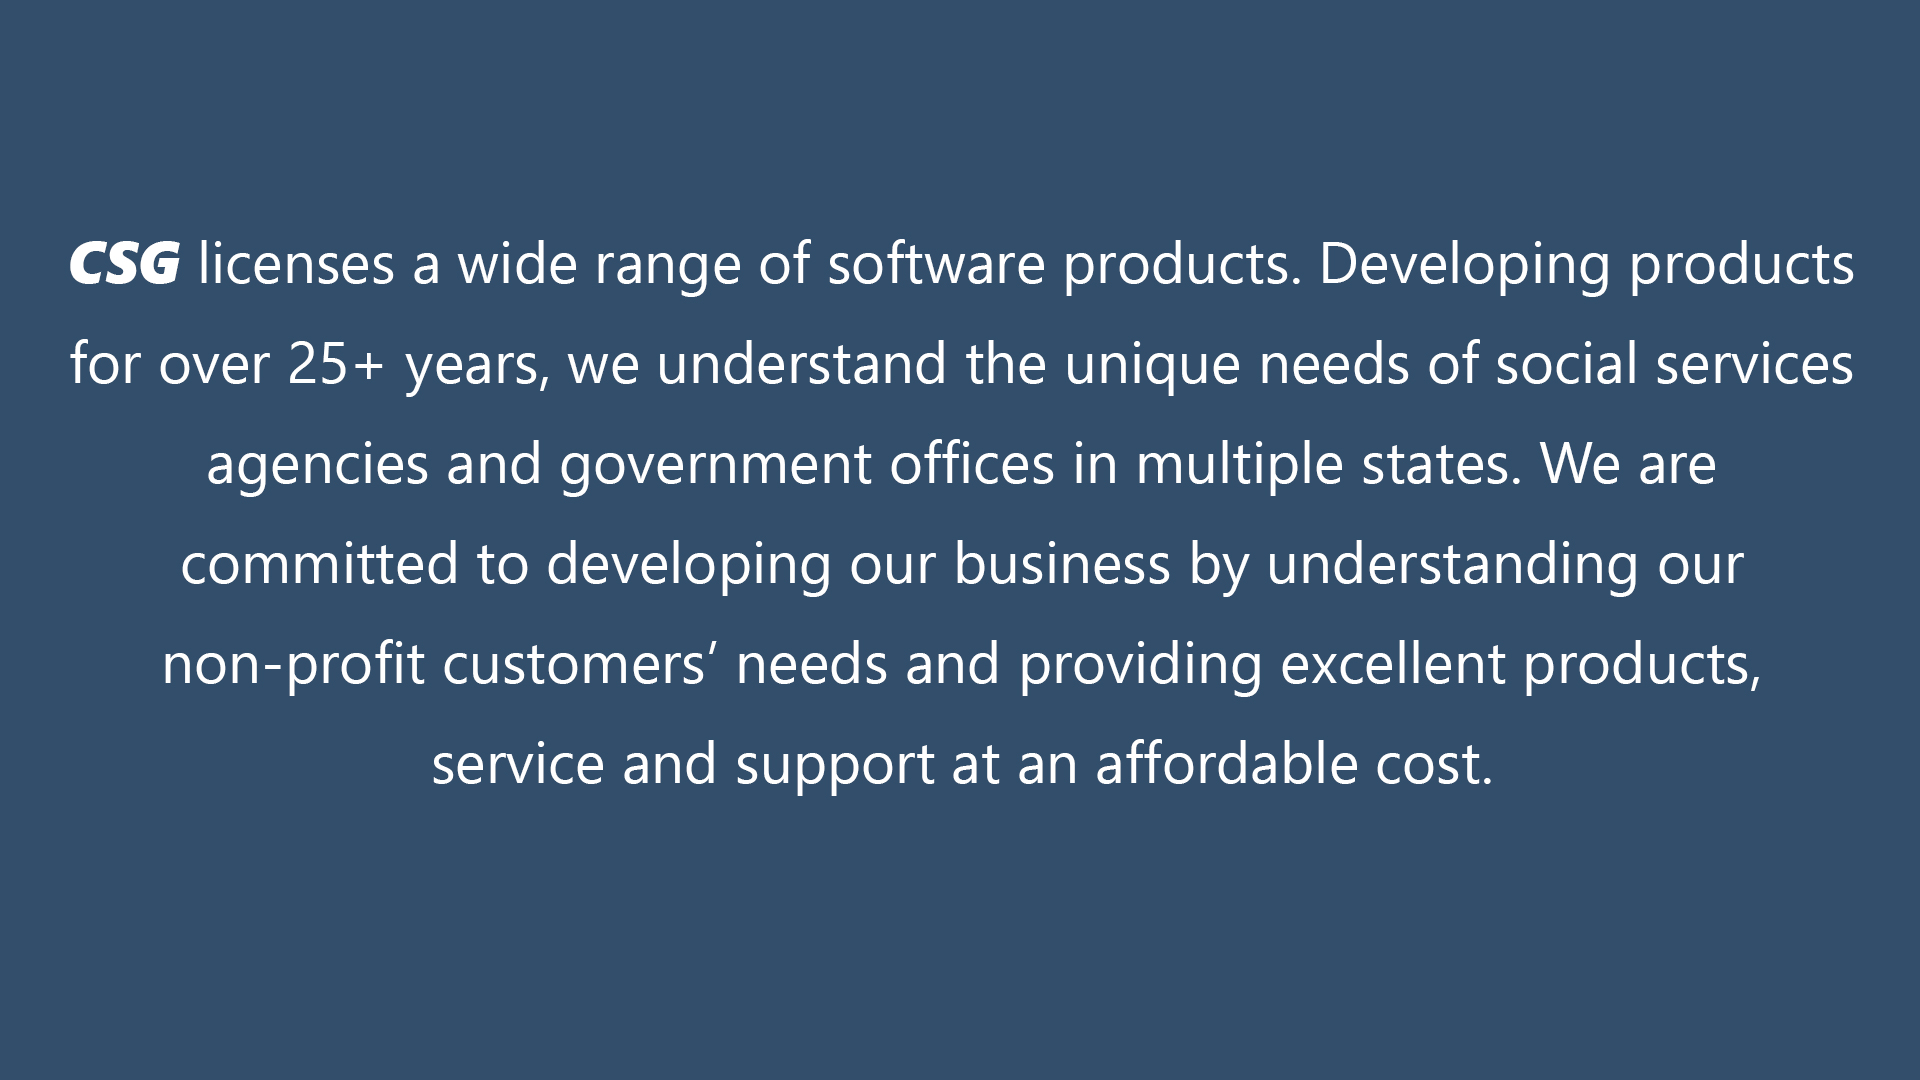 CSG licenses a range of software products, developed over 25 years for social services' unique needs, to dozens of agencies in multiple states and state offices.